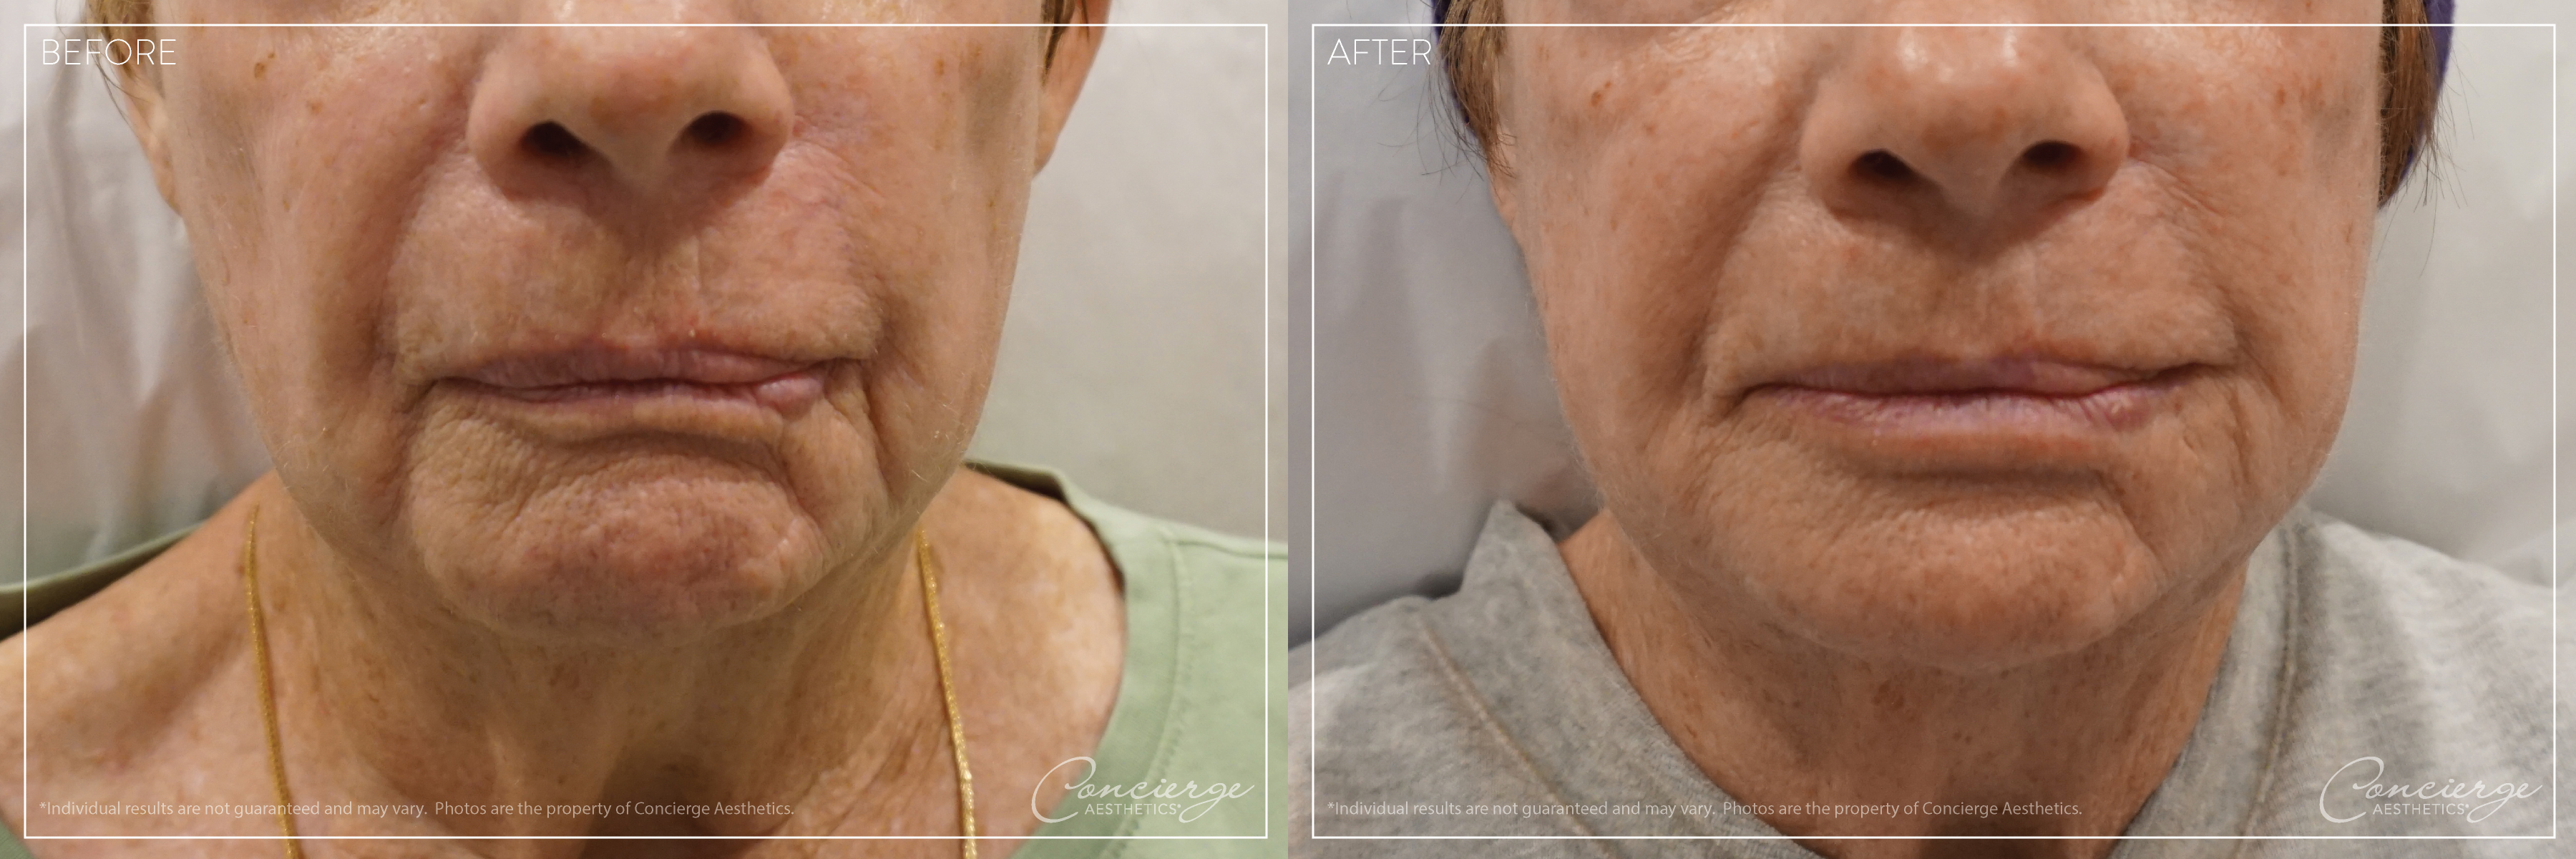 Before and After: BOTOX® Cosmetic and JUVÉDERM® - Lips and Marionette